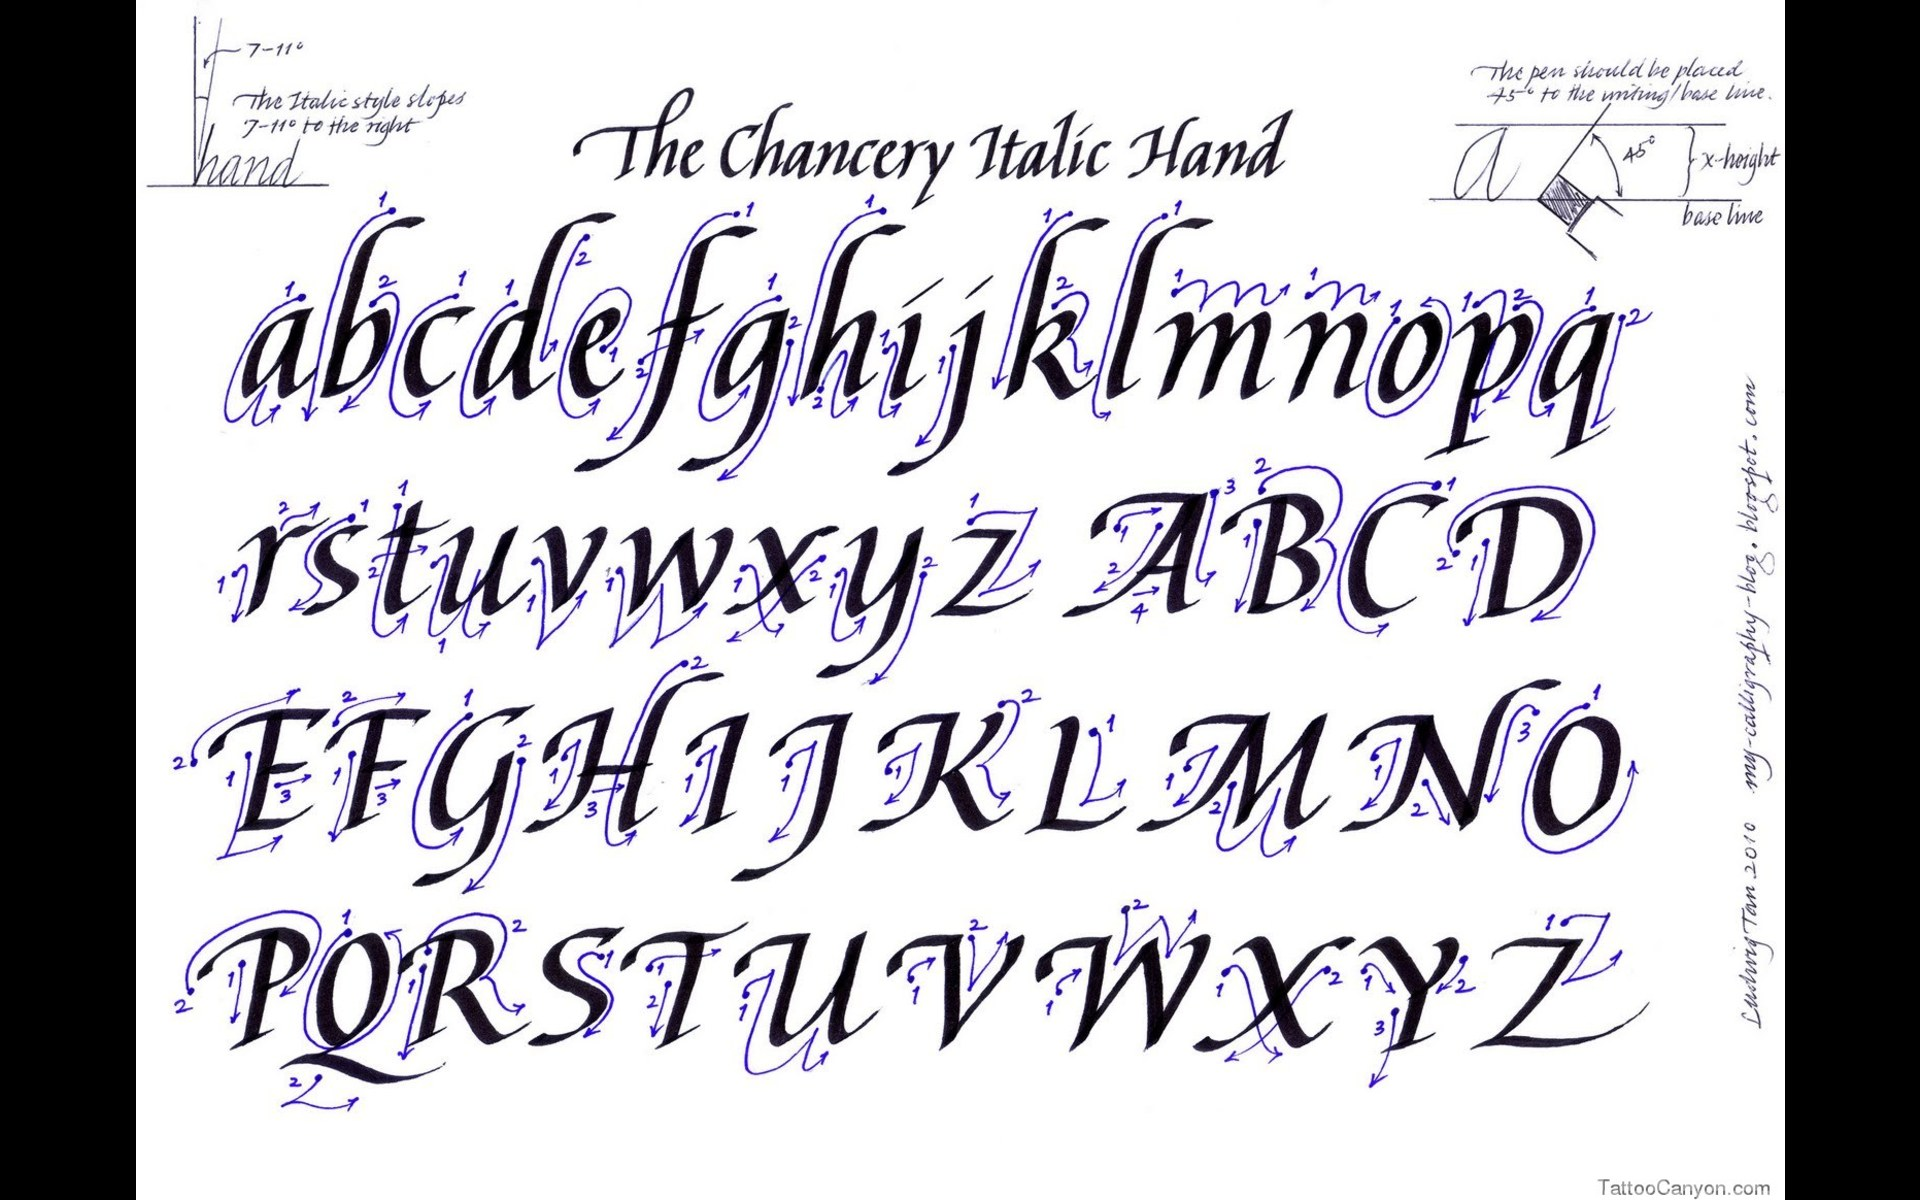 fancy writing alphabet Find and save ideas about fancy writing on pinterest | see more ideas about fancy writing font, fancy writing alphabet and fancy writing letters.